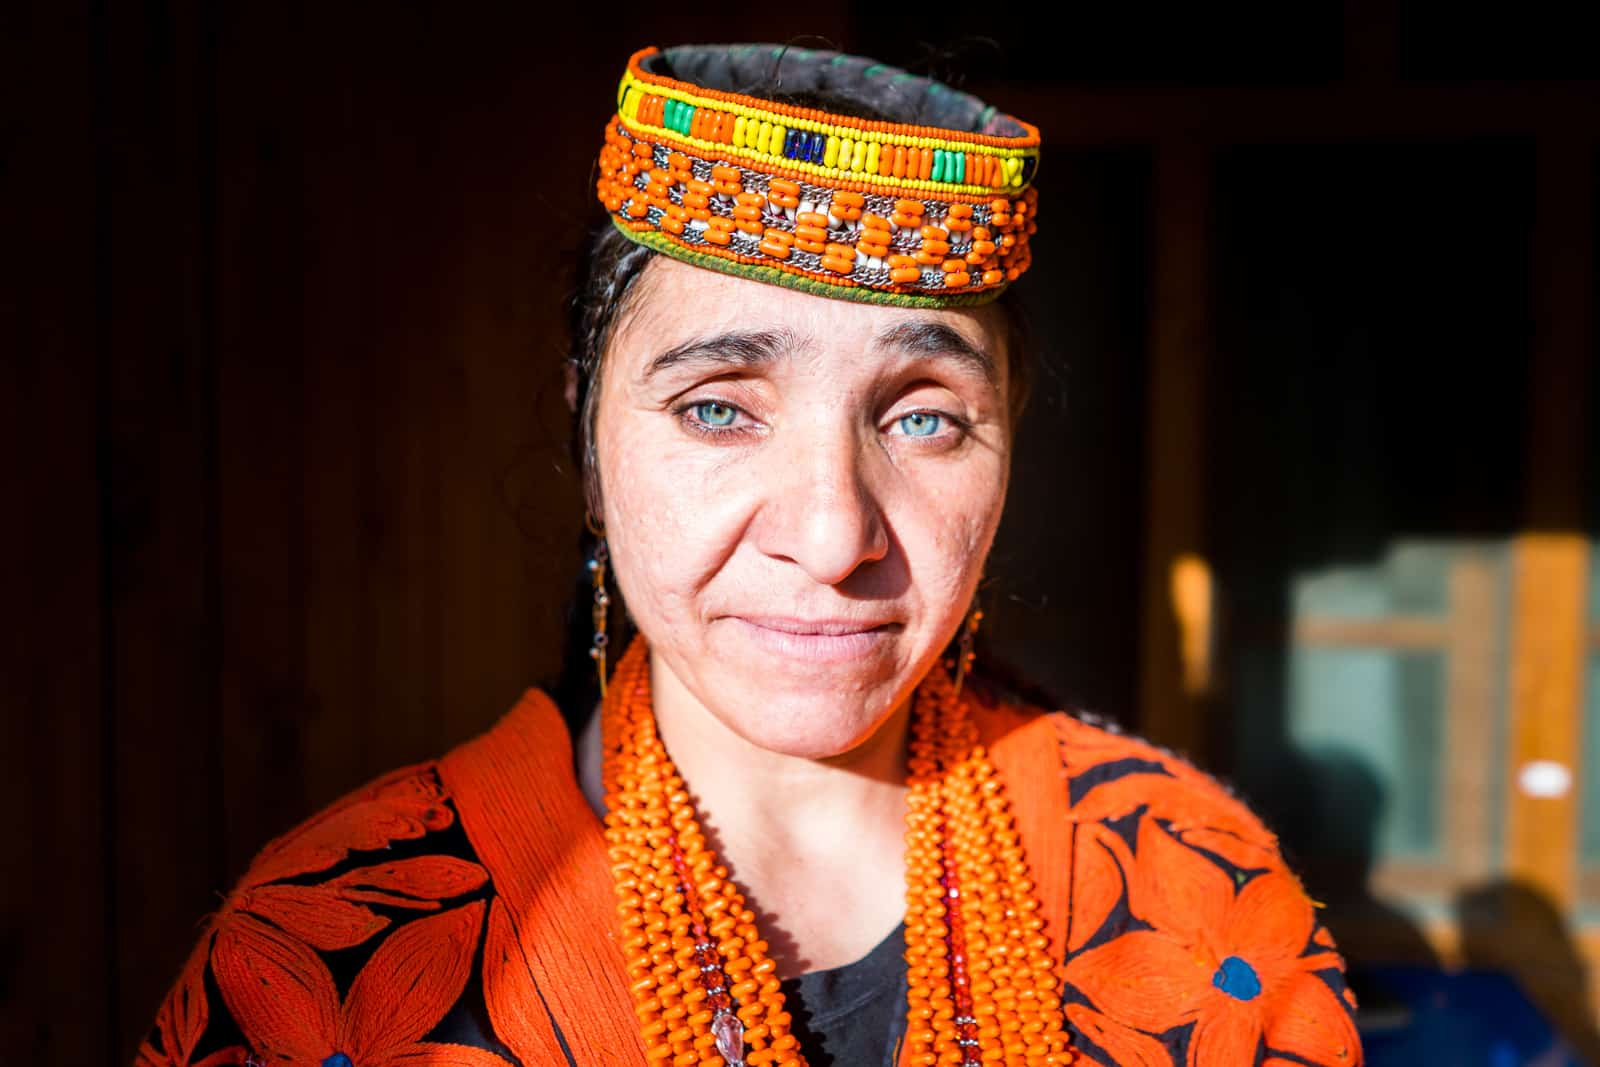 How to get from Chitral to the Kalash Valleys in Khyber Pakhtunkhwa province, Pakistan - Kalasha woman with blue eyes - Lost With Purpose travel blog